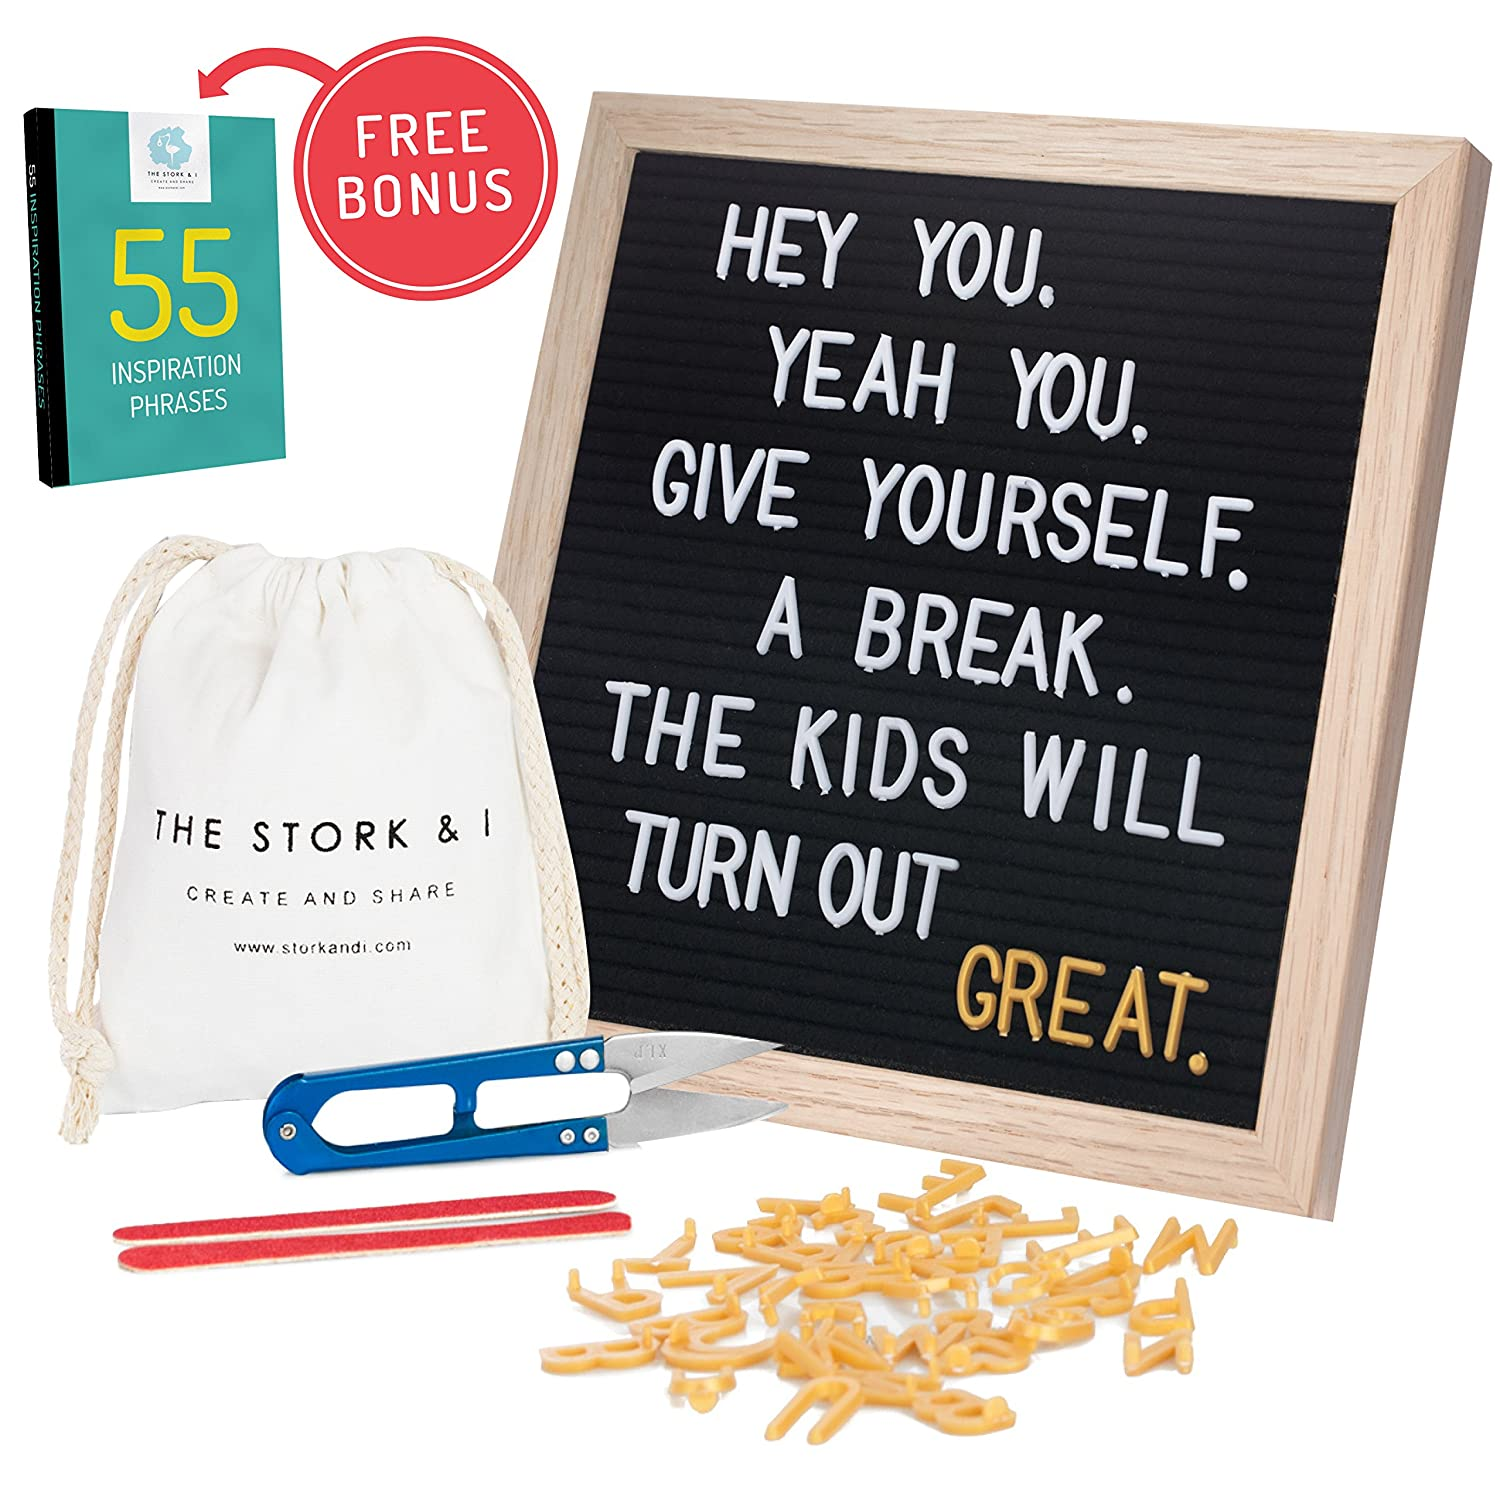 Felt Letter Board With Stand and Wall Mount, 10 x 10 Changeable Message Board With Oak Frame, 540 White and Gold Letters, Numbers, Emojis and Symbols, Wooden Characters Signs Letterboard (Black) The Stork & I